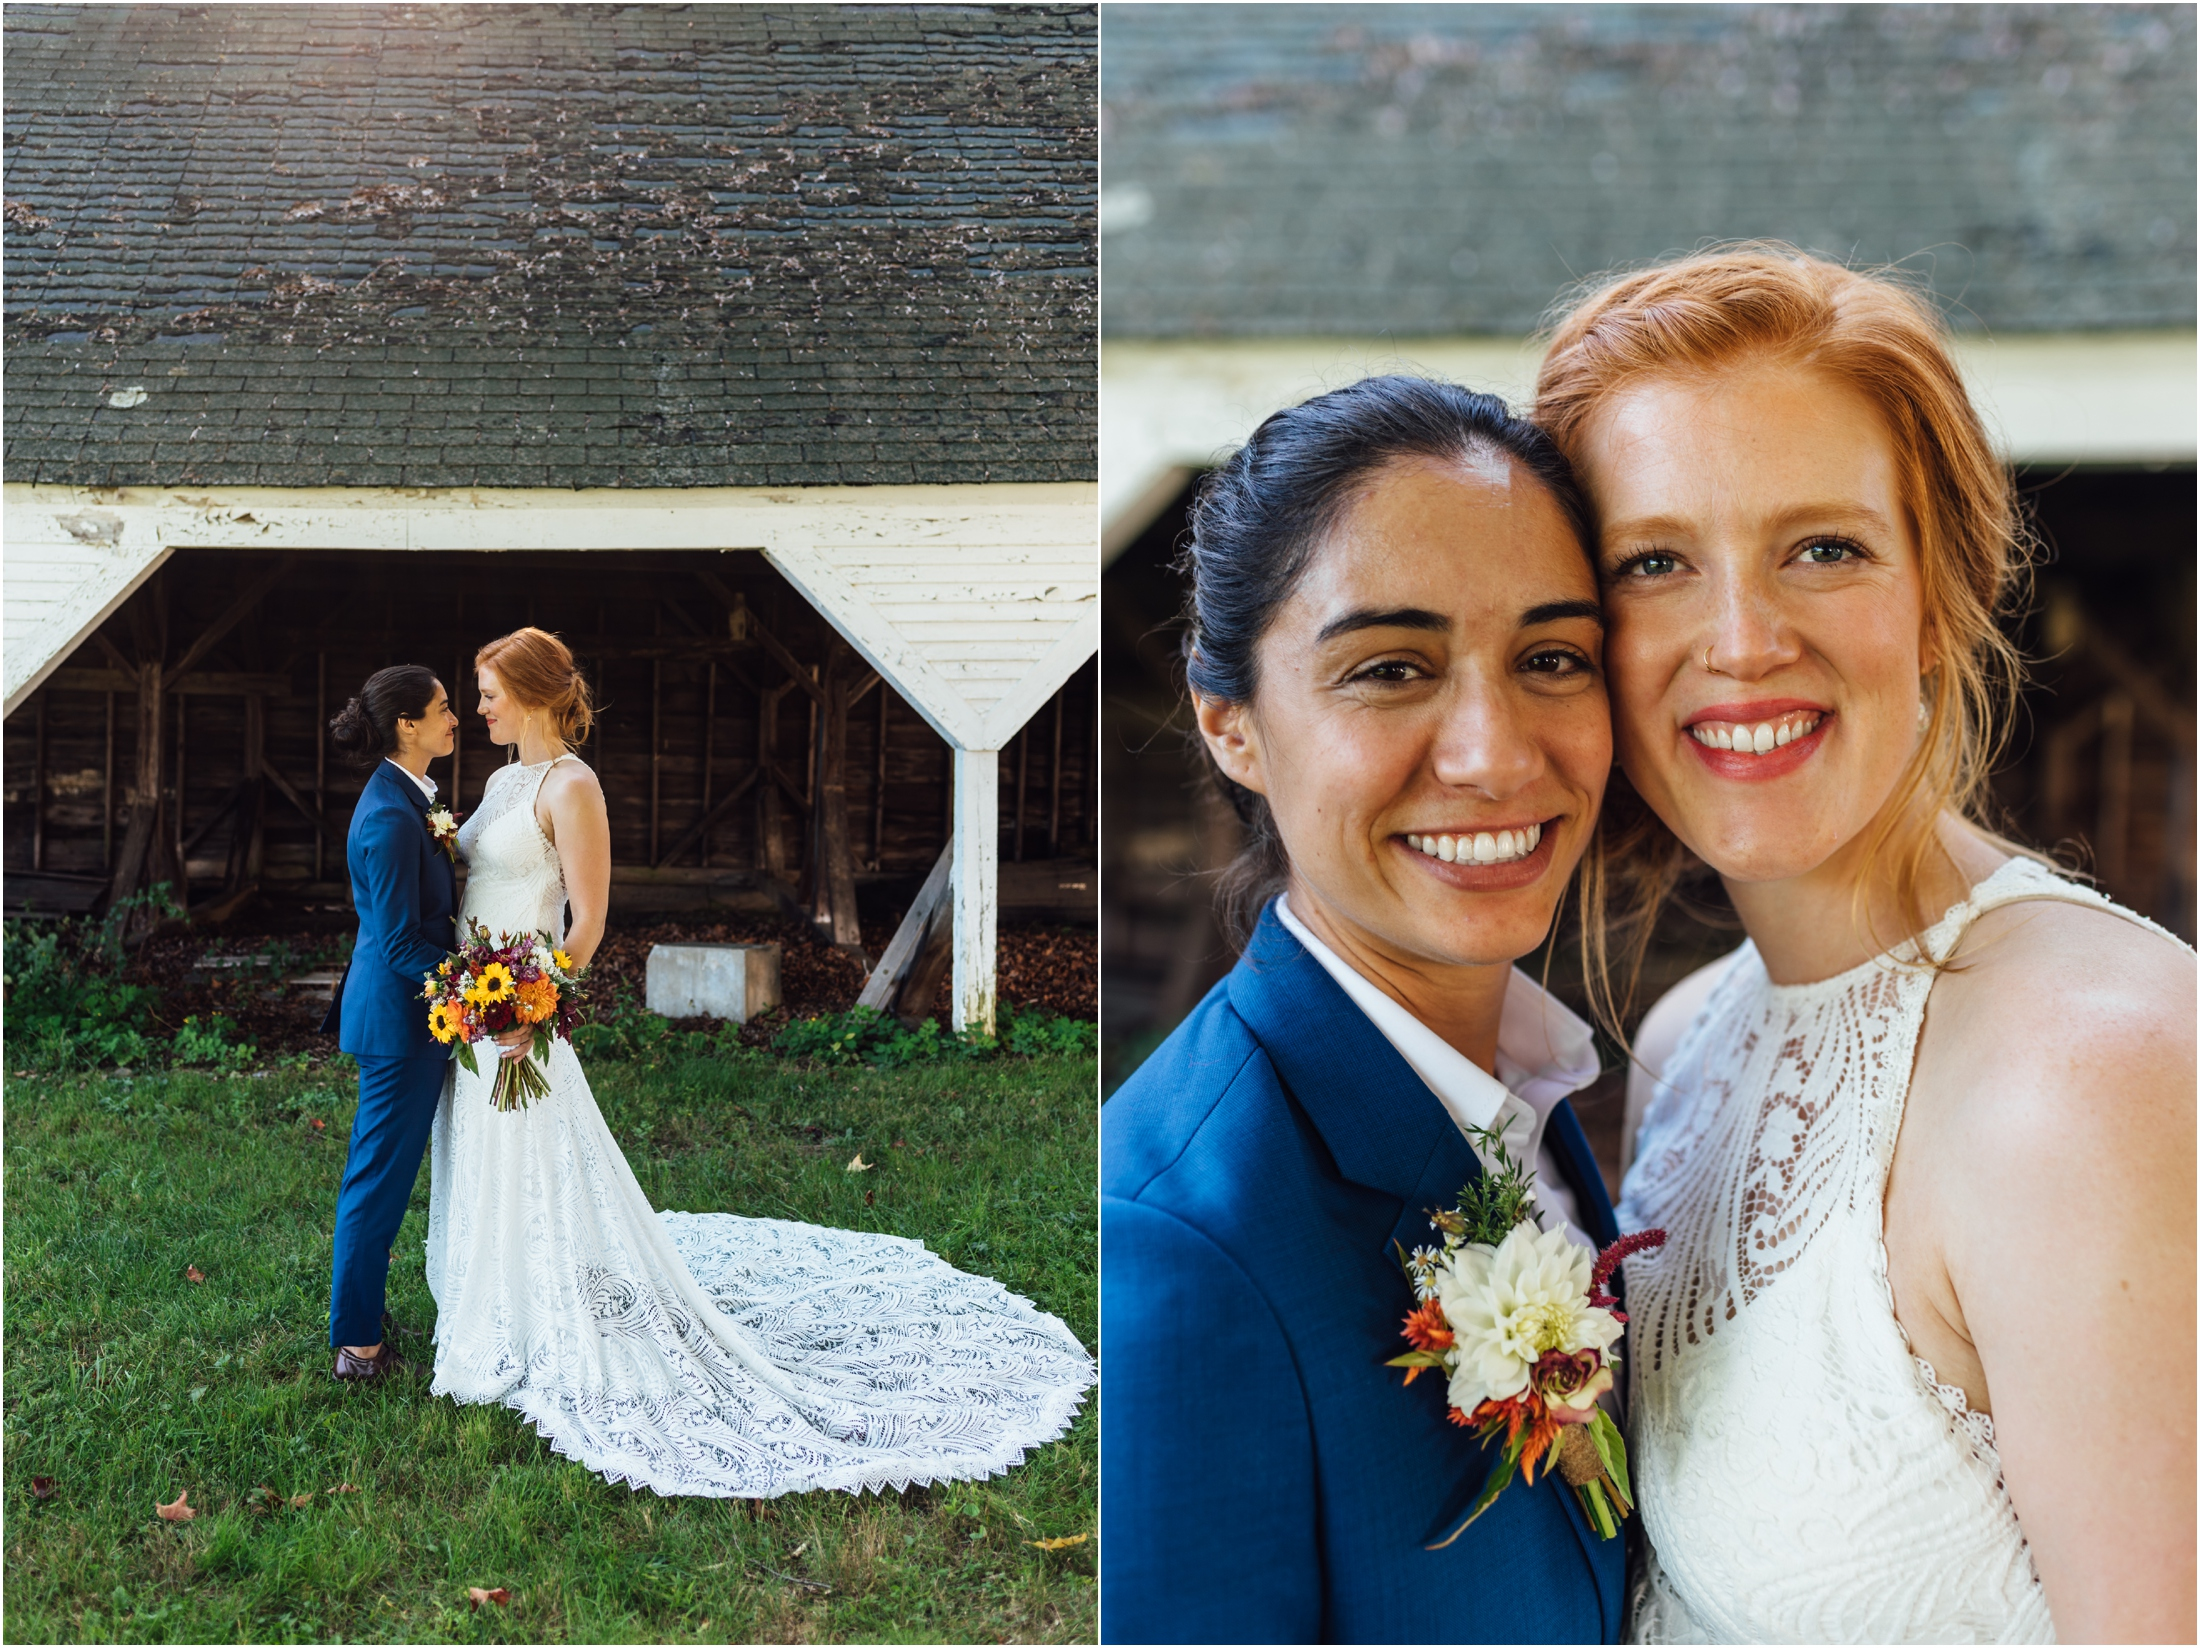 Kate_and_Michele_New_Hampshire_wedding_the_photo_farm_0601.jpg